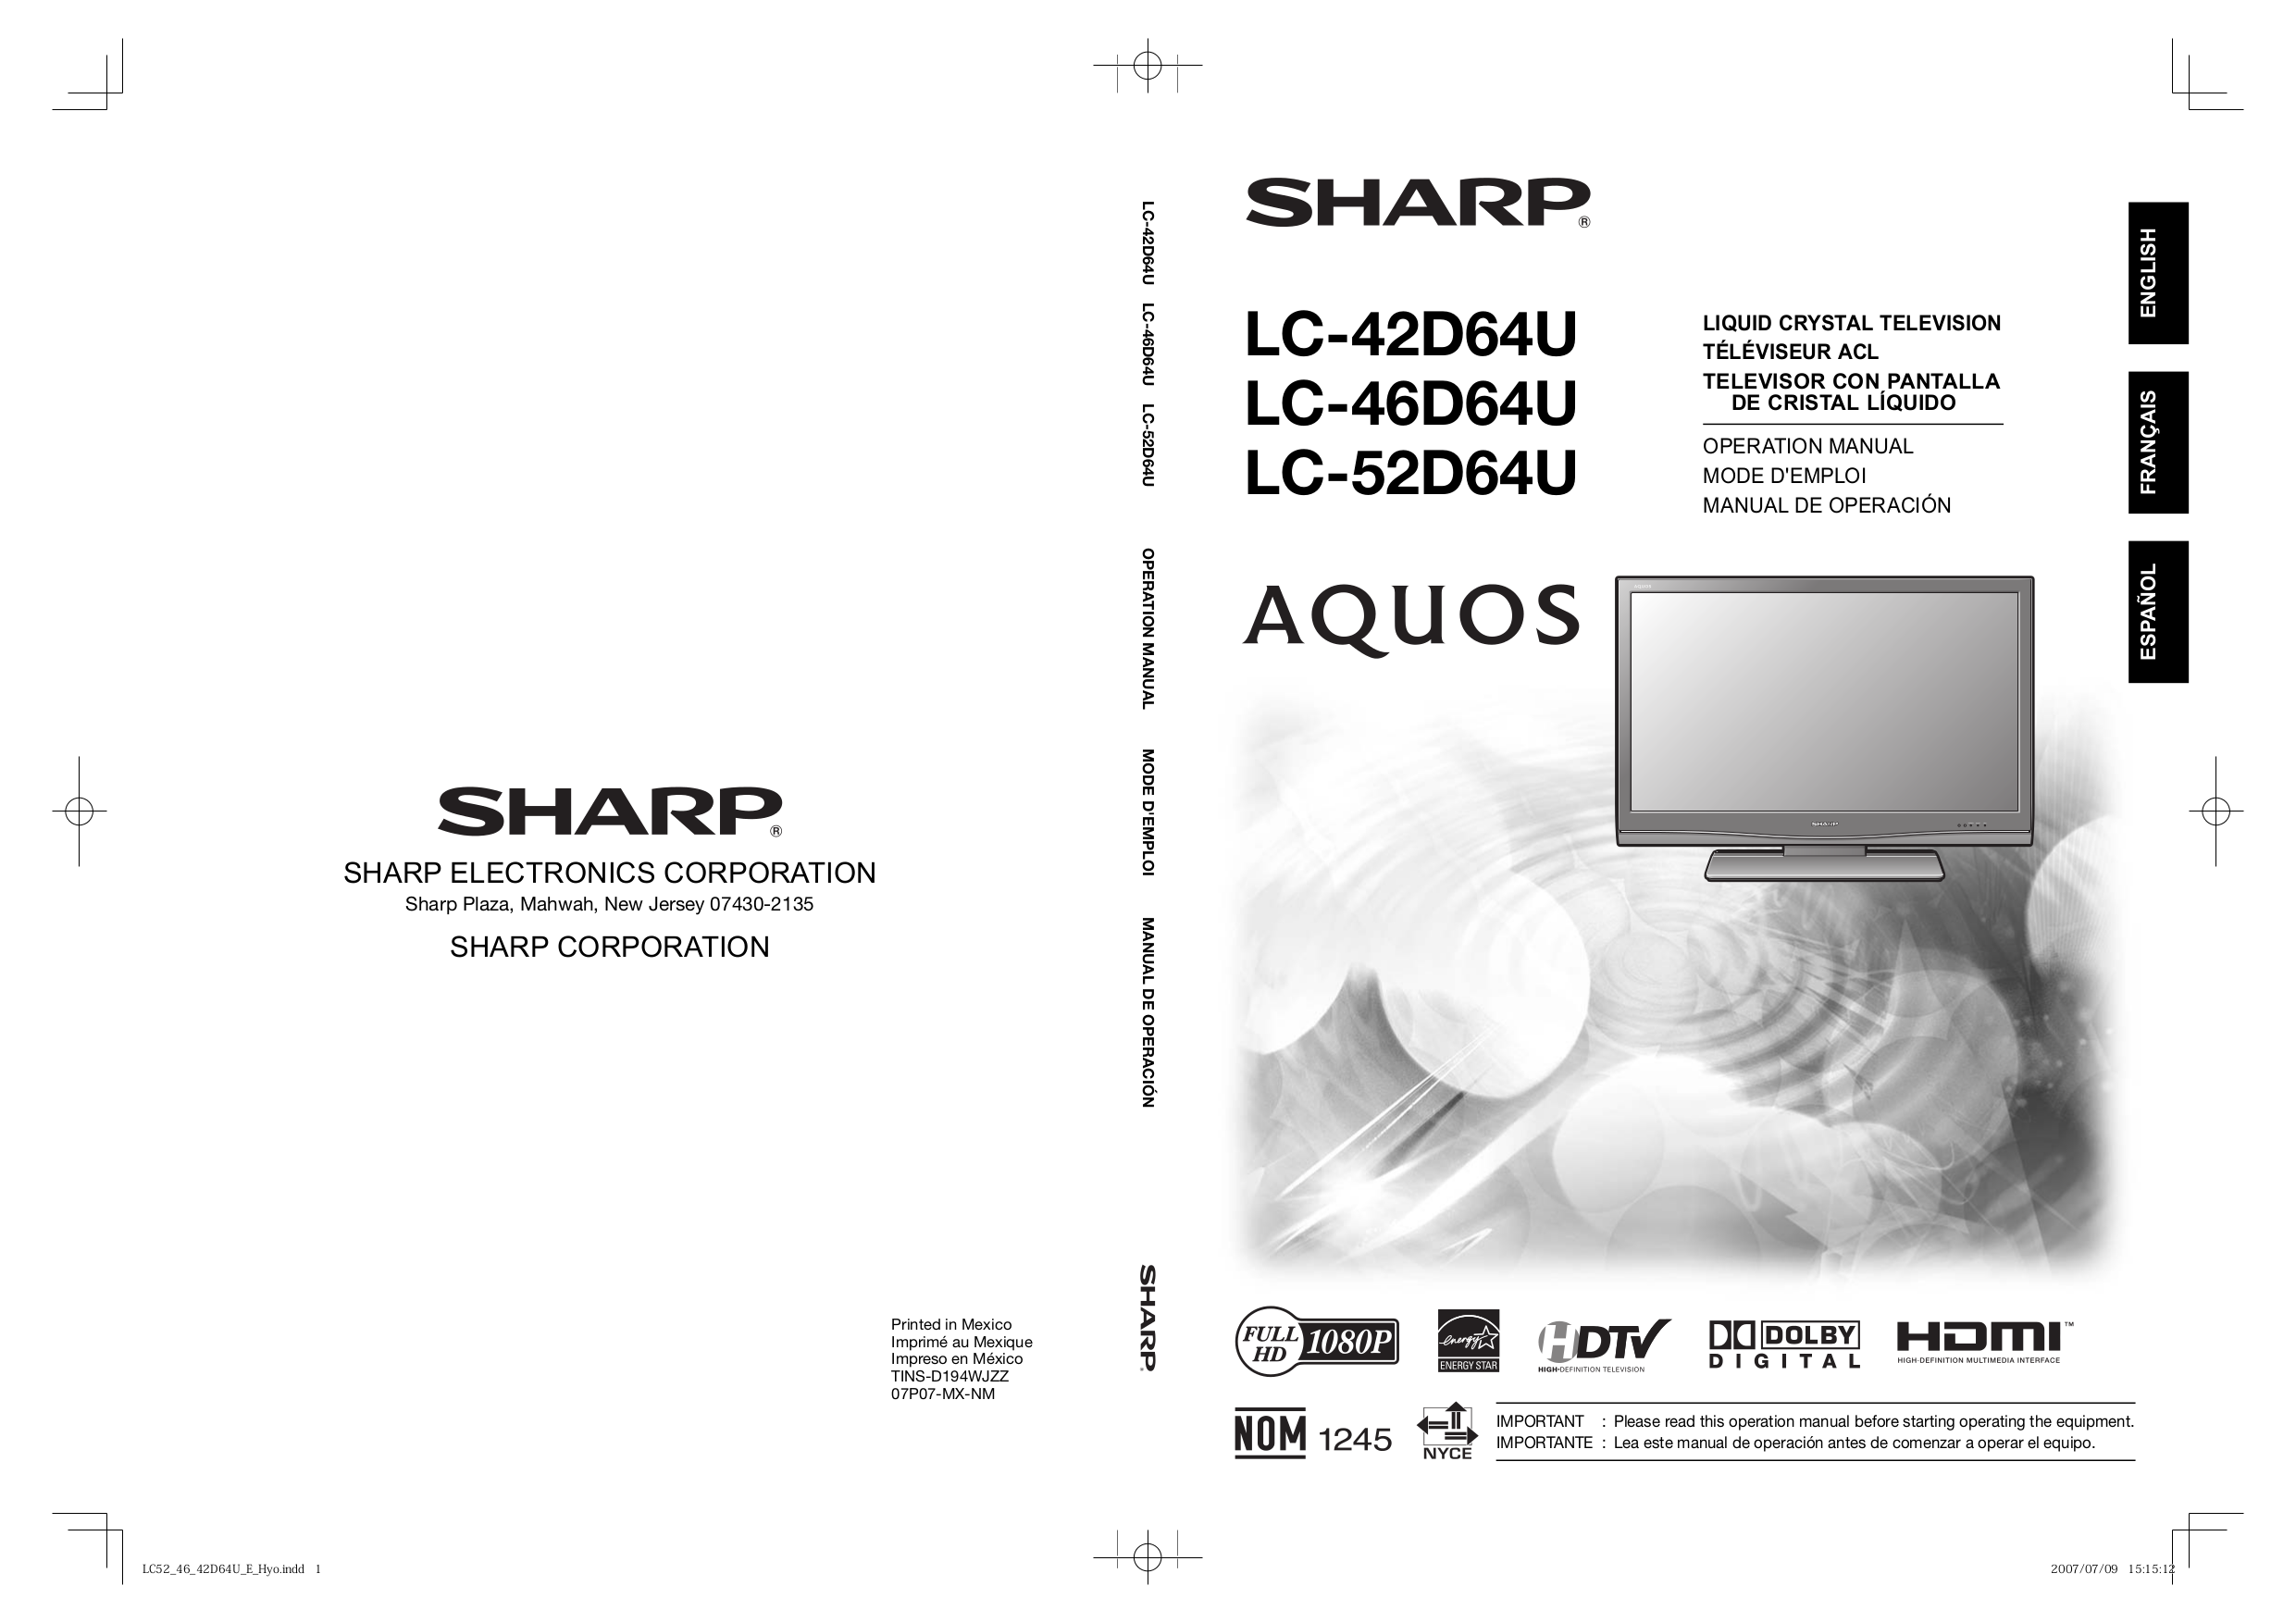 download free pdf for sharp aquos lc 46d64u tv manual rh umlib com sharp aquos lc-46d64u service manual sharp aquos lc-46d64u service manual